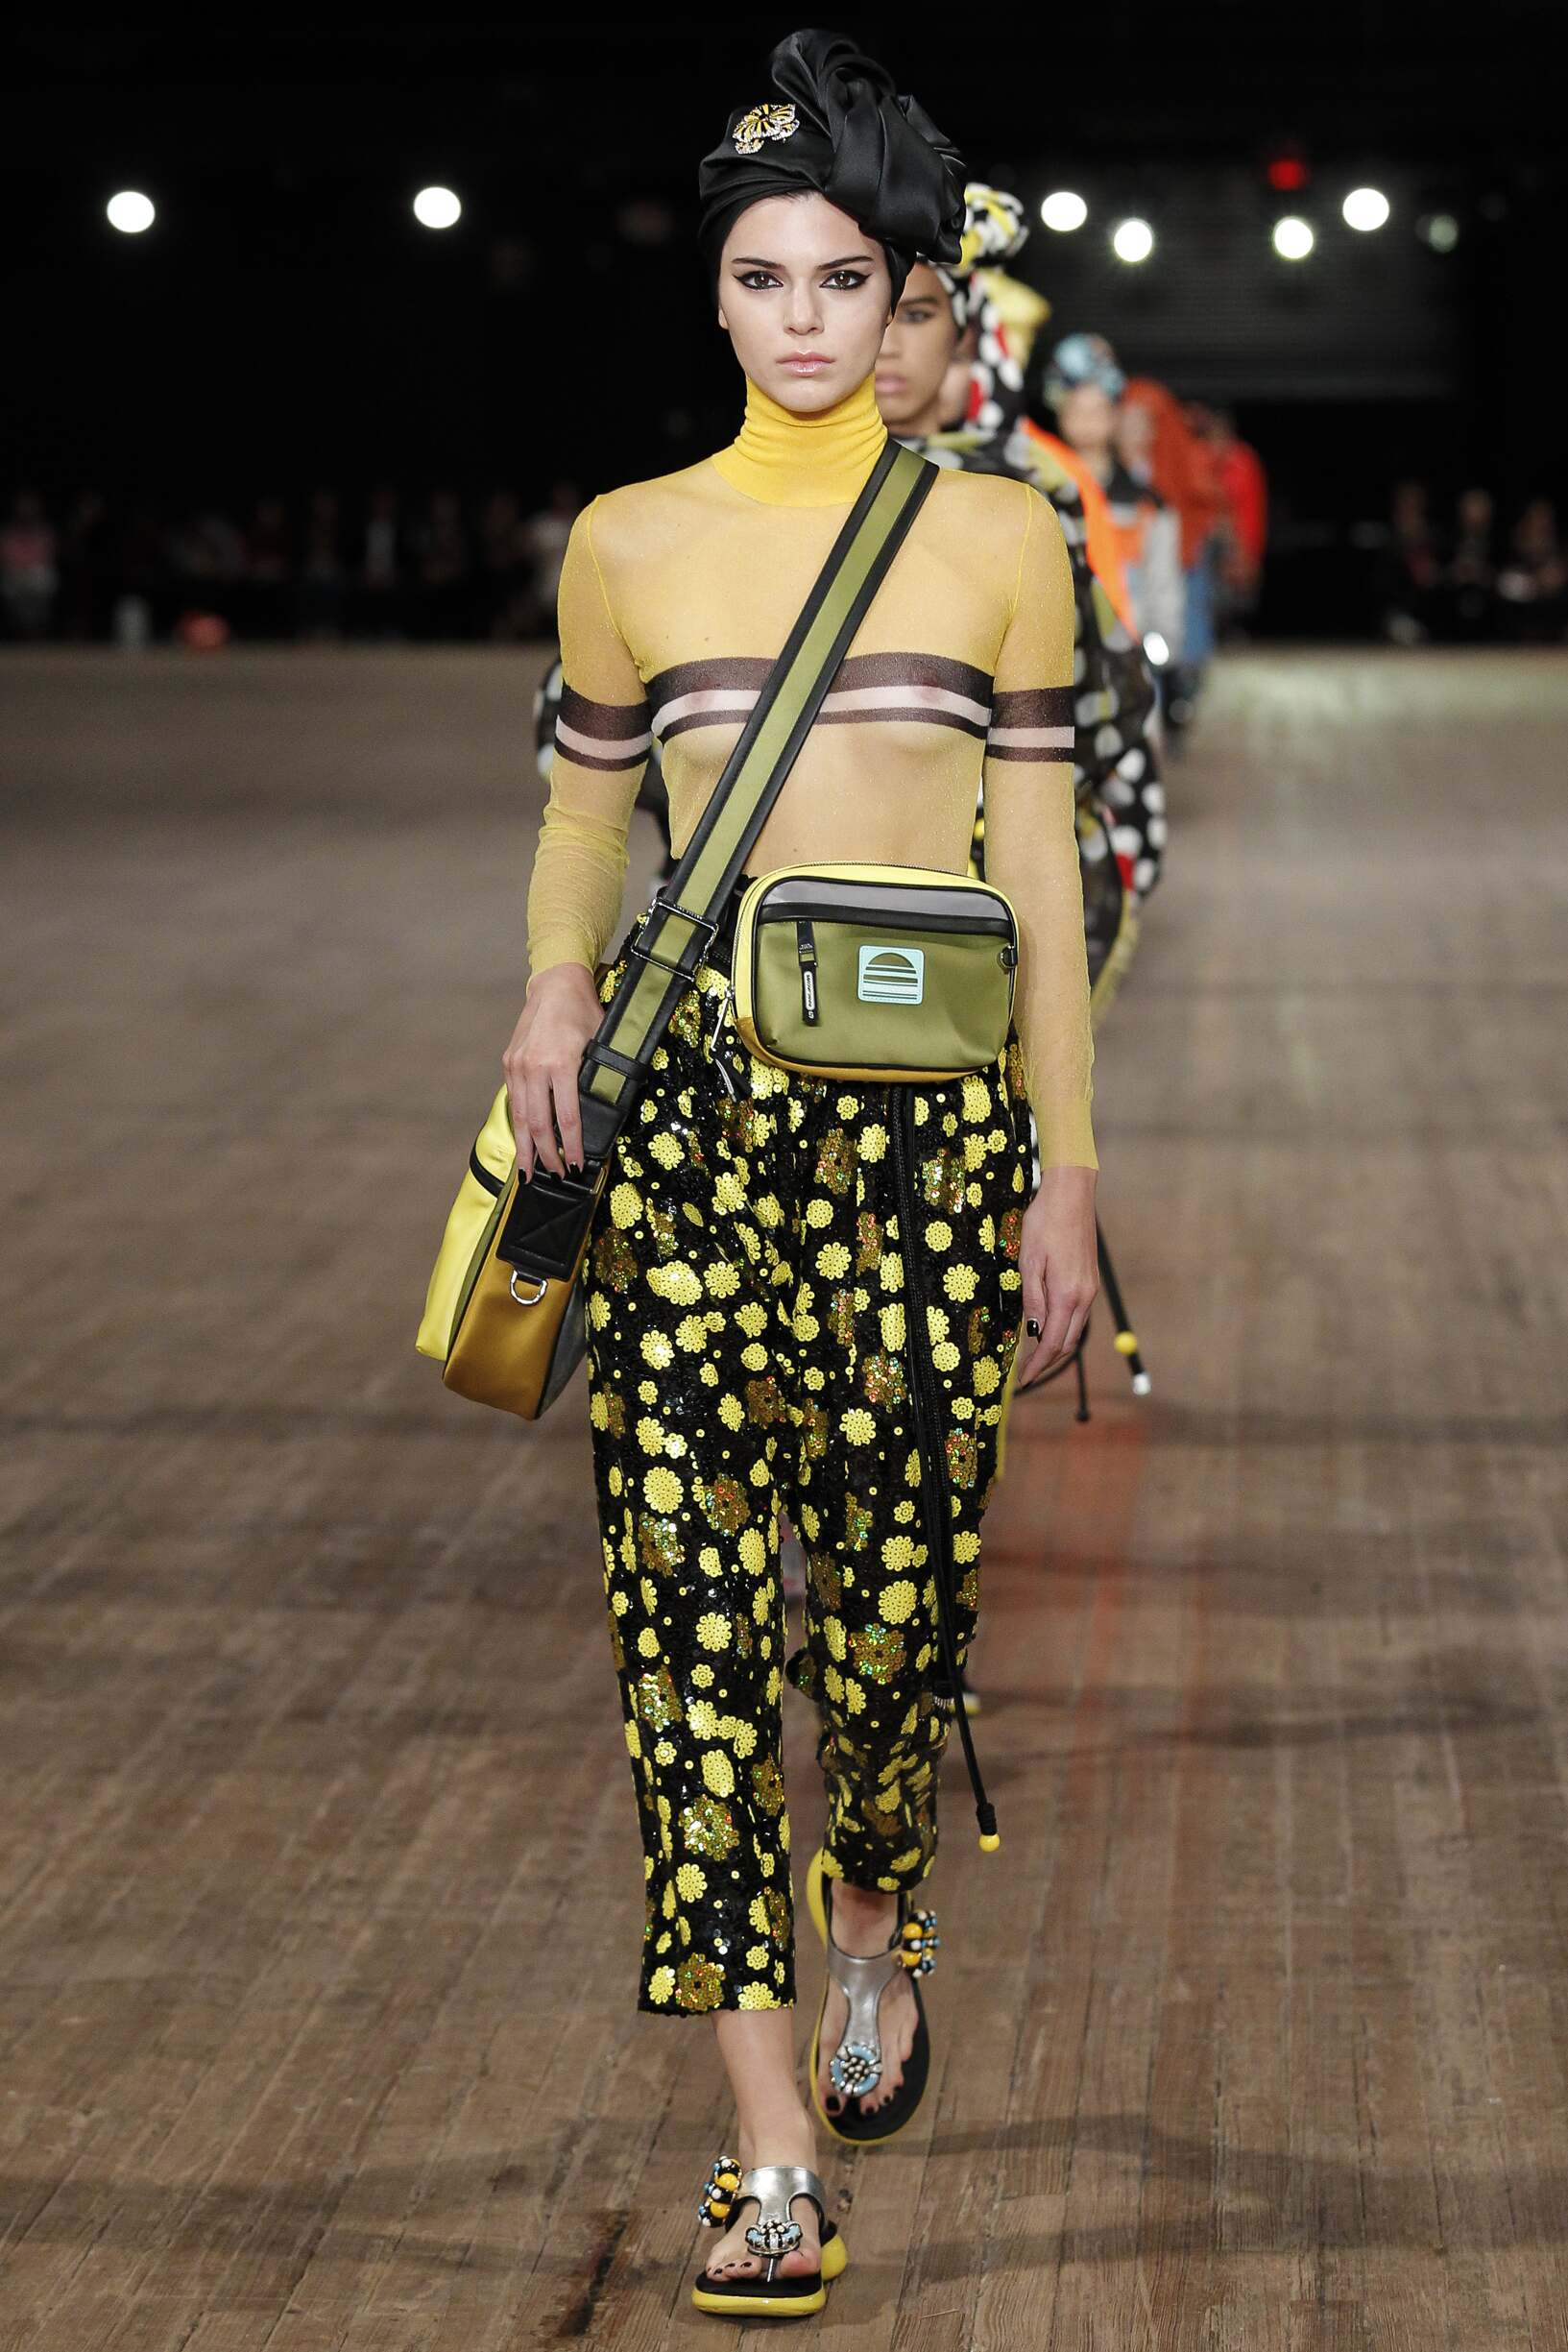 MARC JACOBS SPRING 2018 WOMENS COLLECTION  The Skinny Beep